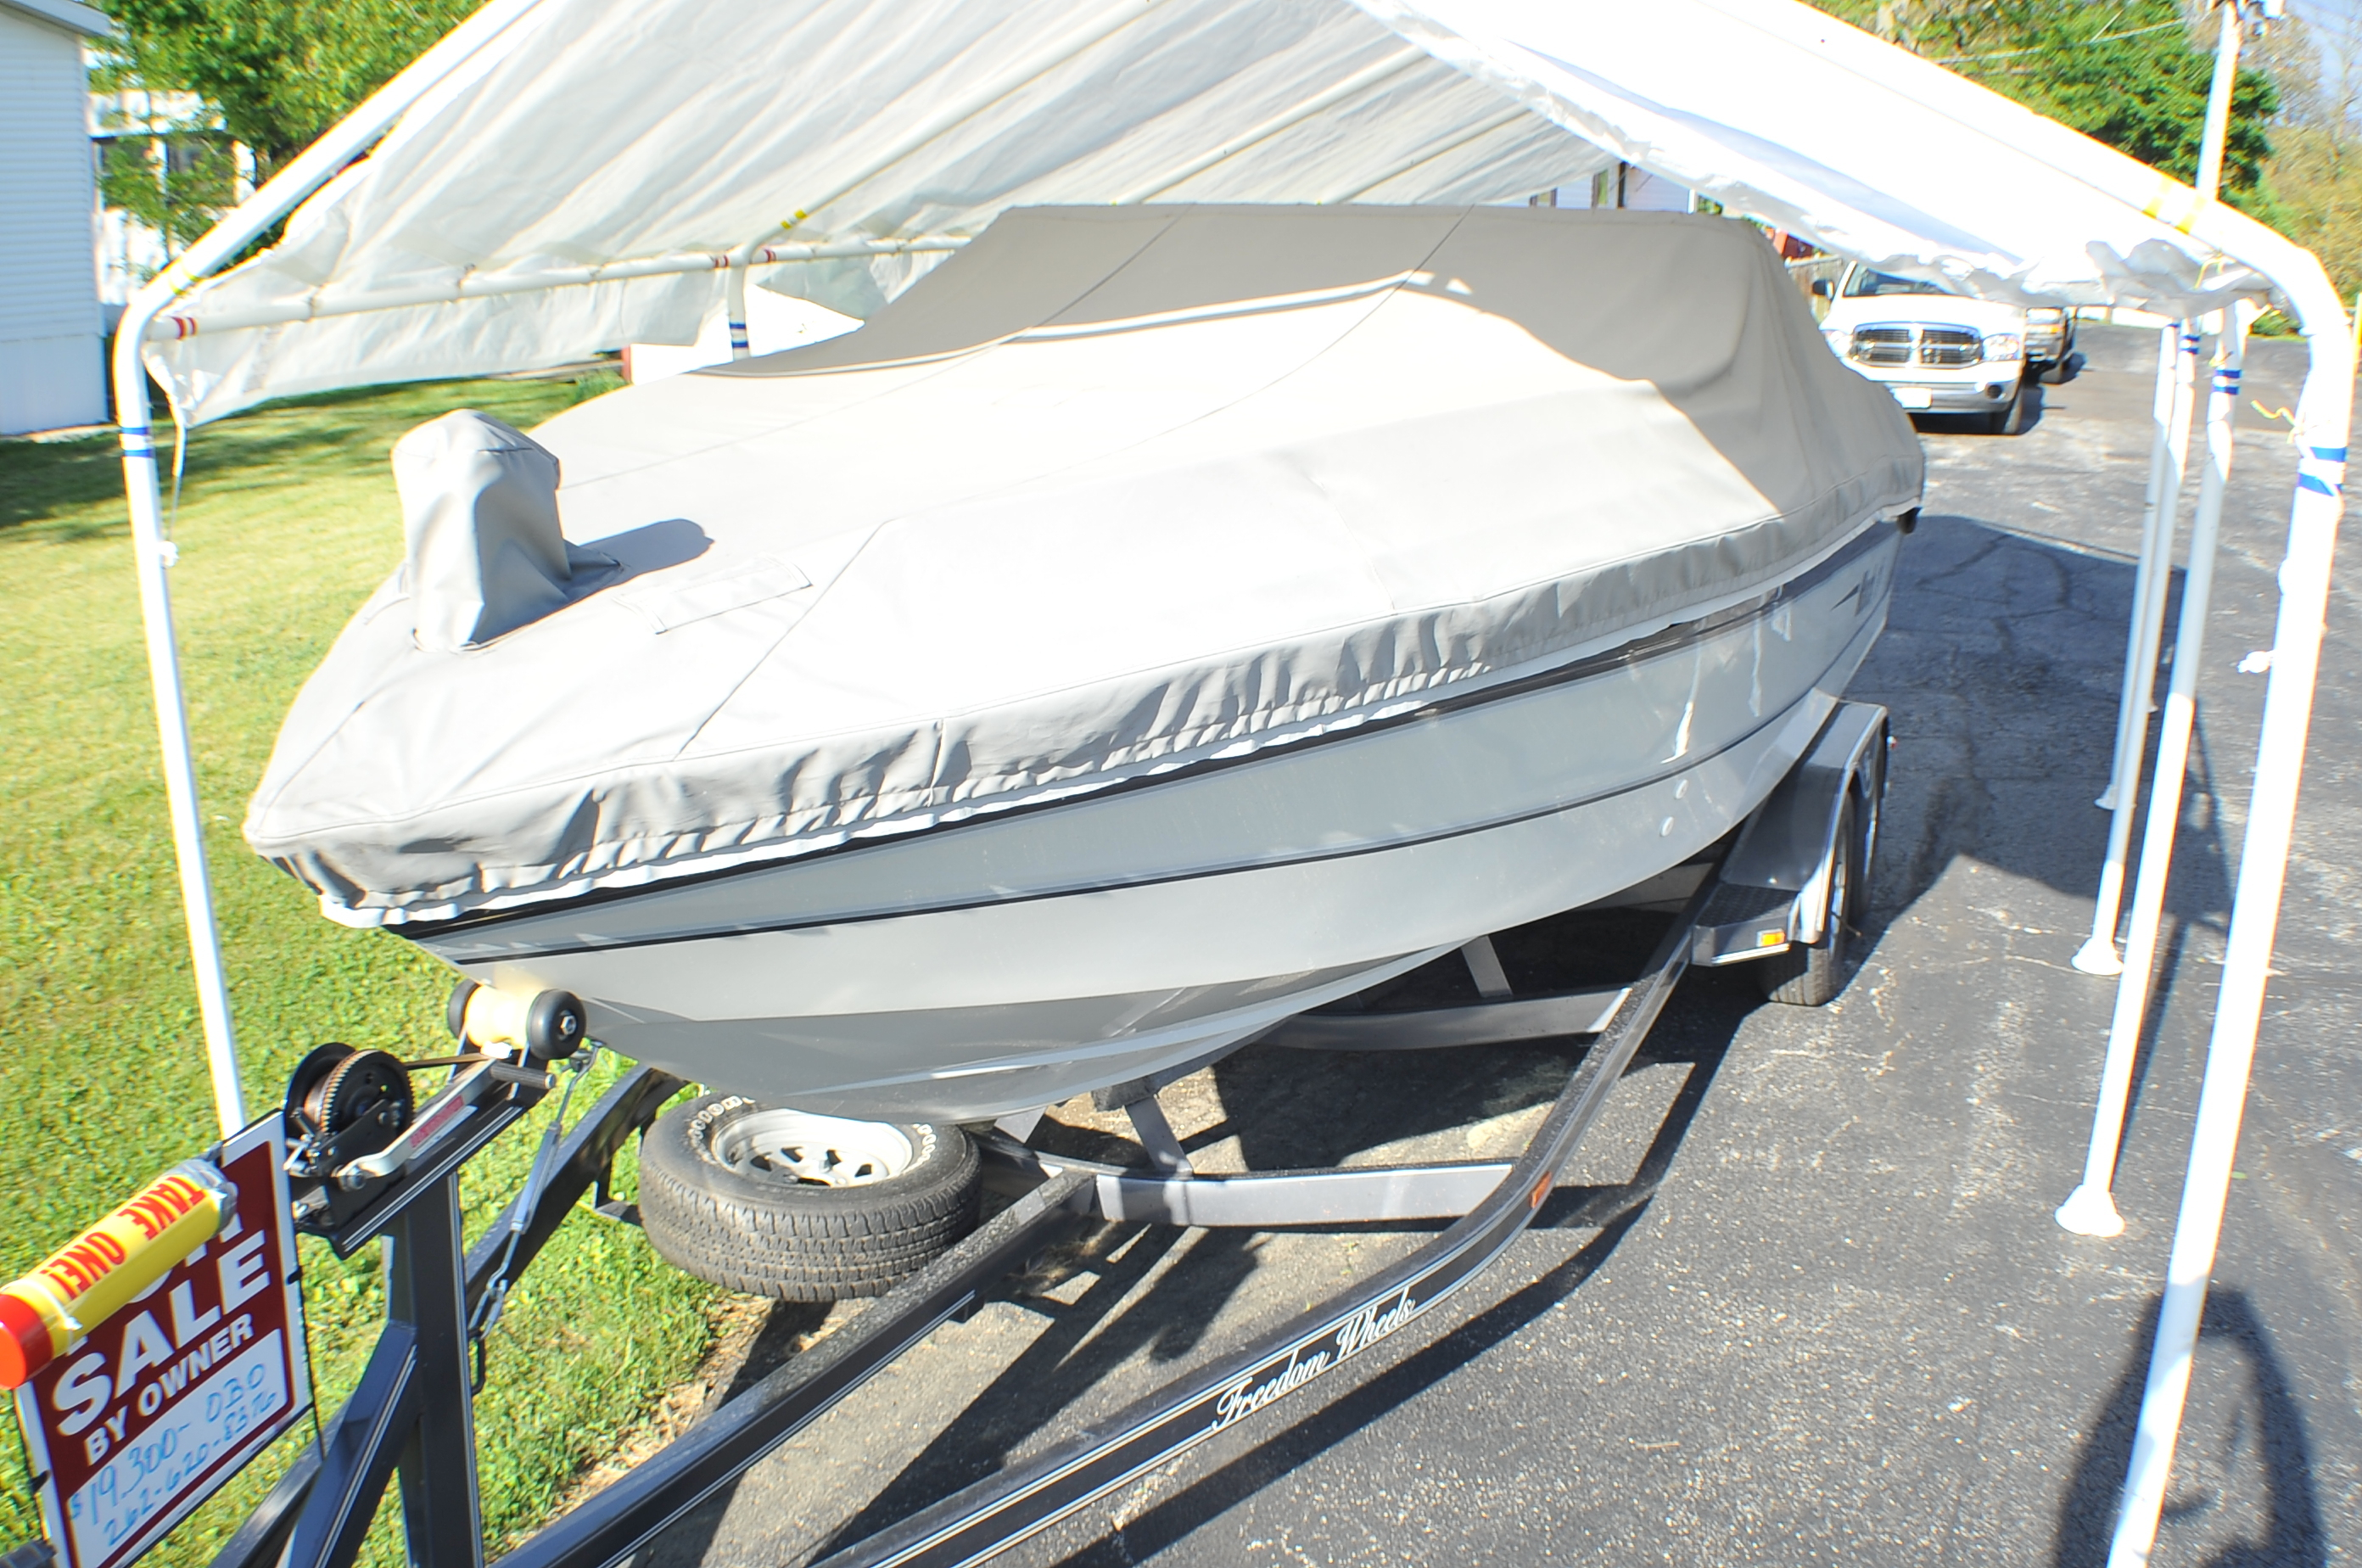 1989 Mach 1 2450 Magnum Cuddy Cabin Speed Boat Sale